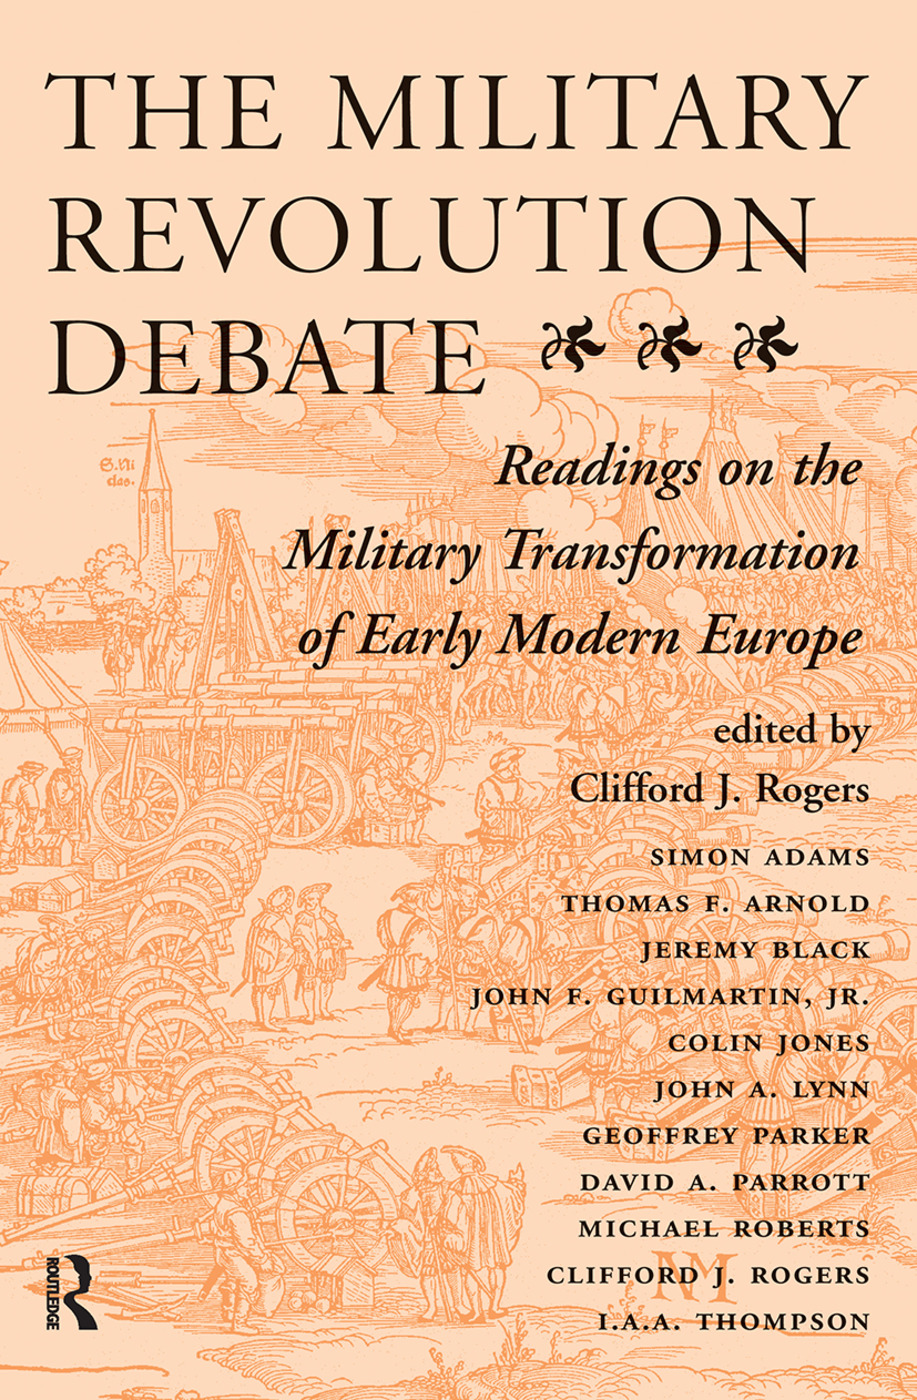 The Military Revolution Debate: Readings On The Military Transformation Of Early Modern Europe, 1st Edition (Hardback) book cover